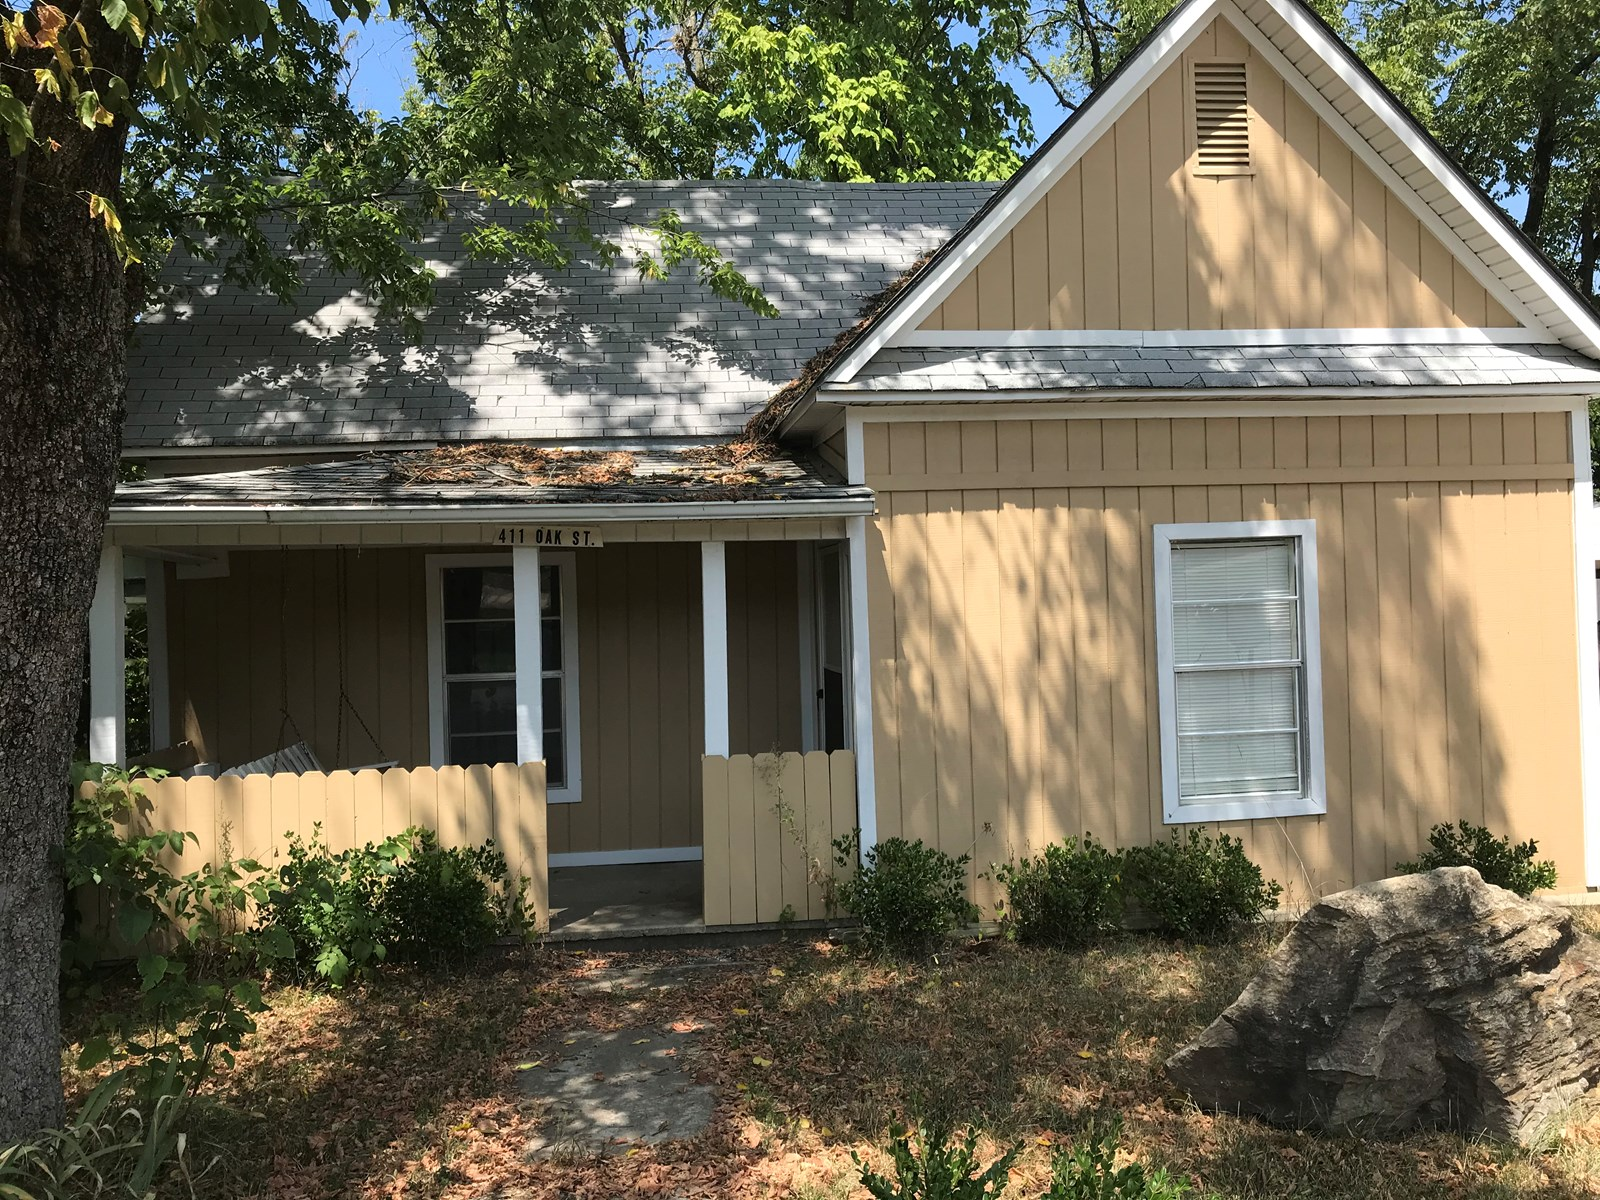 Small Cottage For Sale in Historic Leslie, Arkansas